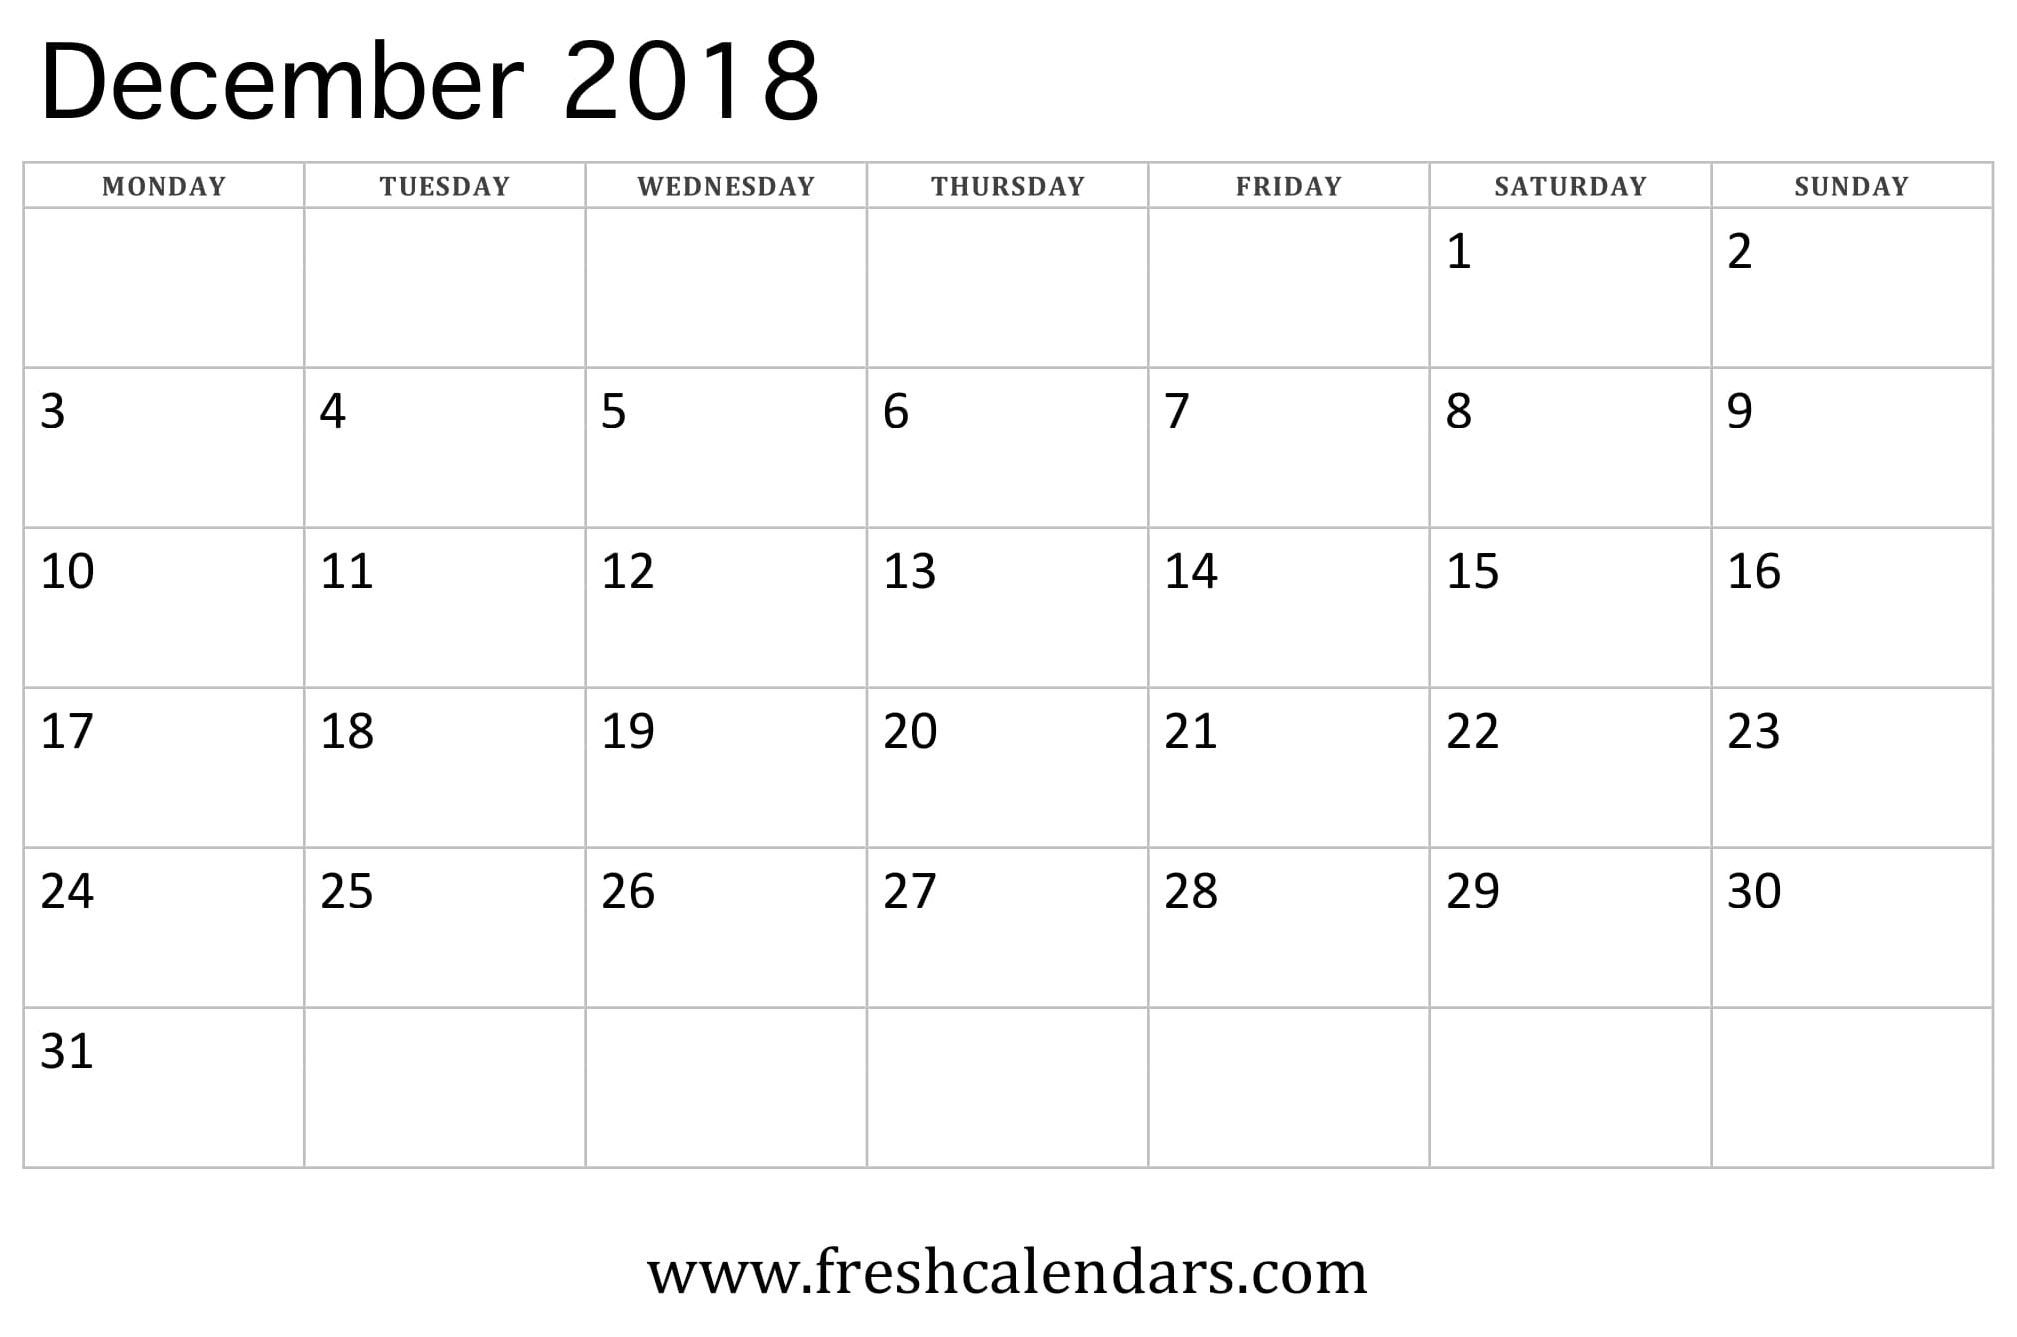 December 2018 Calendar (week starts on monday)